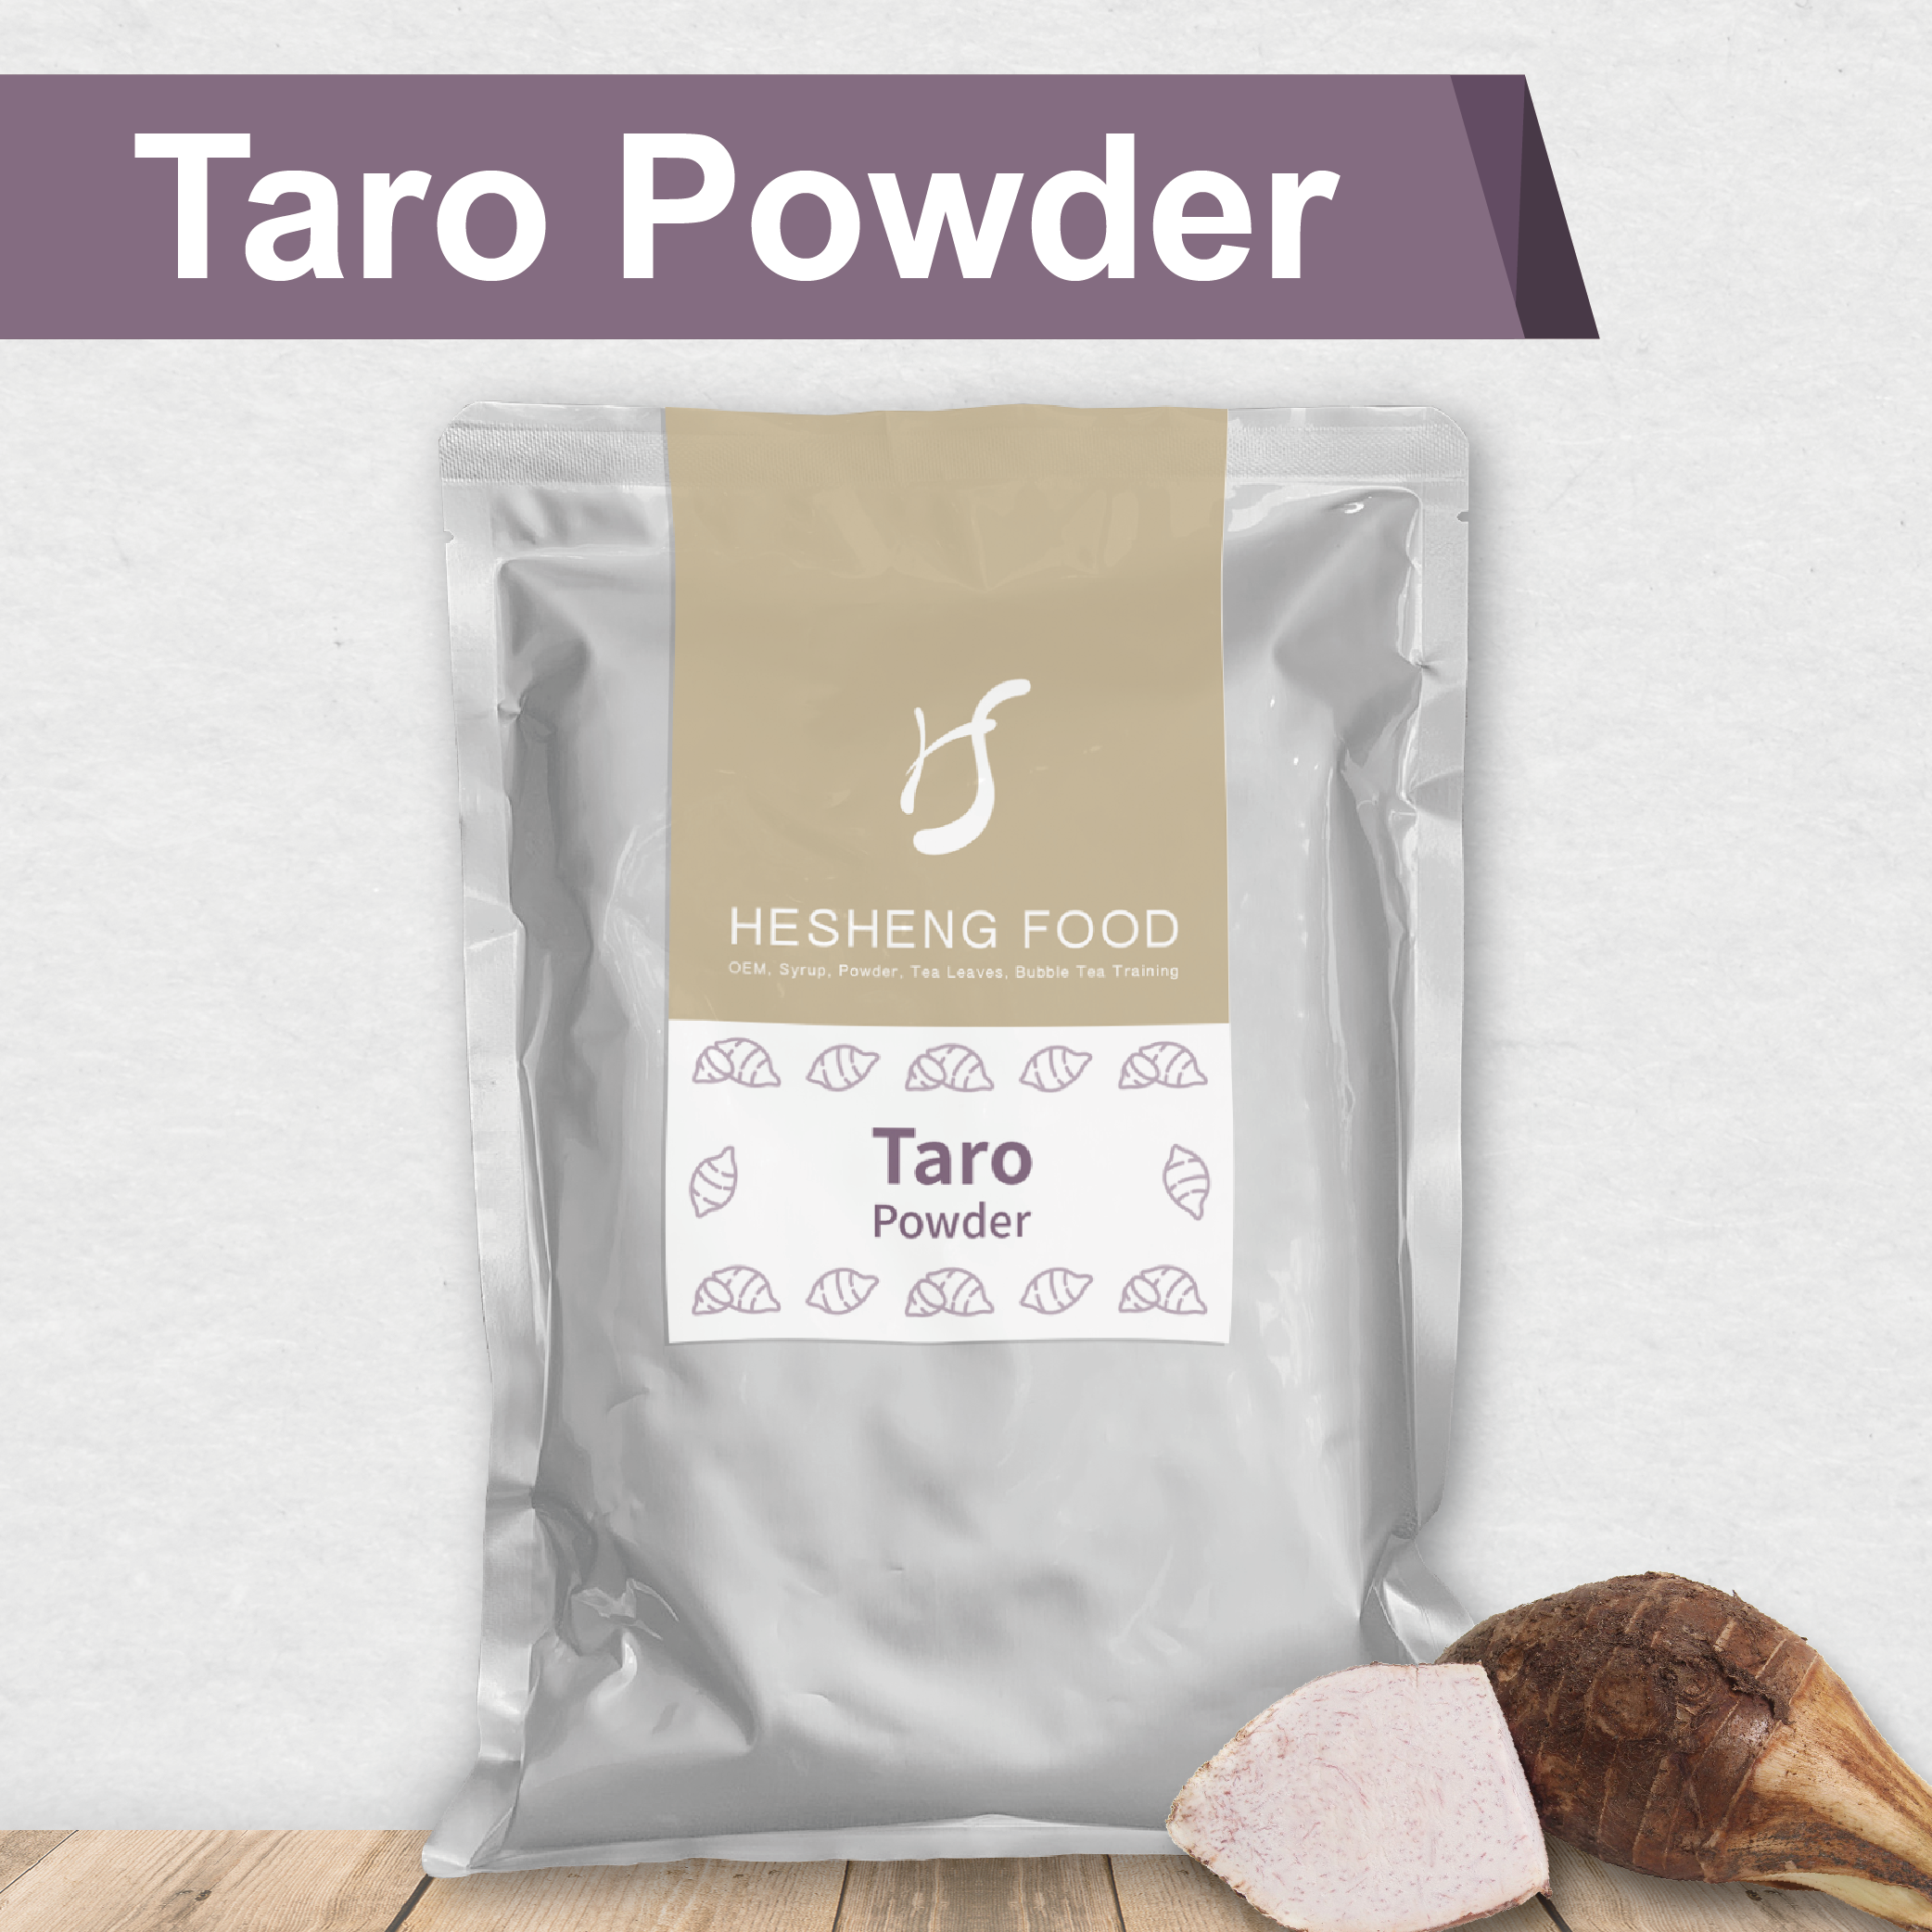 Taiwan Hot Selling Taro Powder for Drinks and Beverage